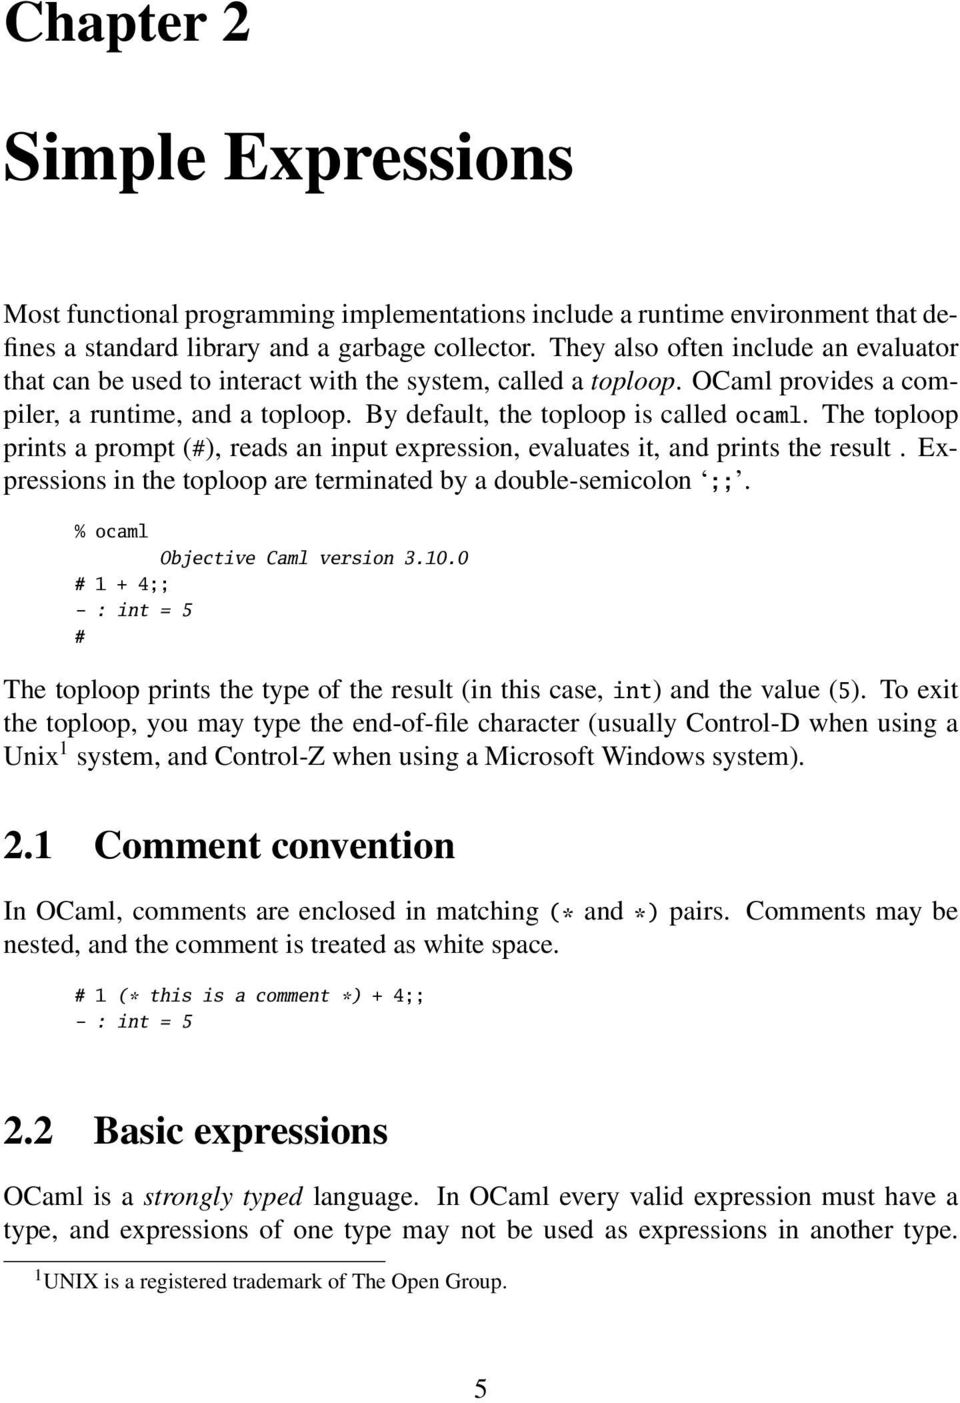 The toploop prints a prompt (#), reads an input expression, evaluates it, and prints the result. Expressions in the toploop are terminated by a double-semicolon ;;.